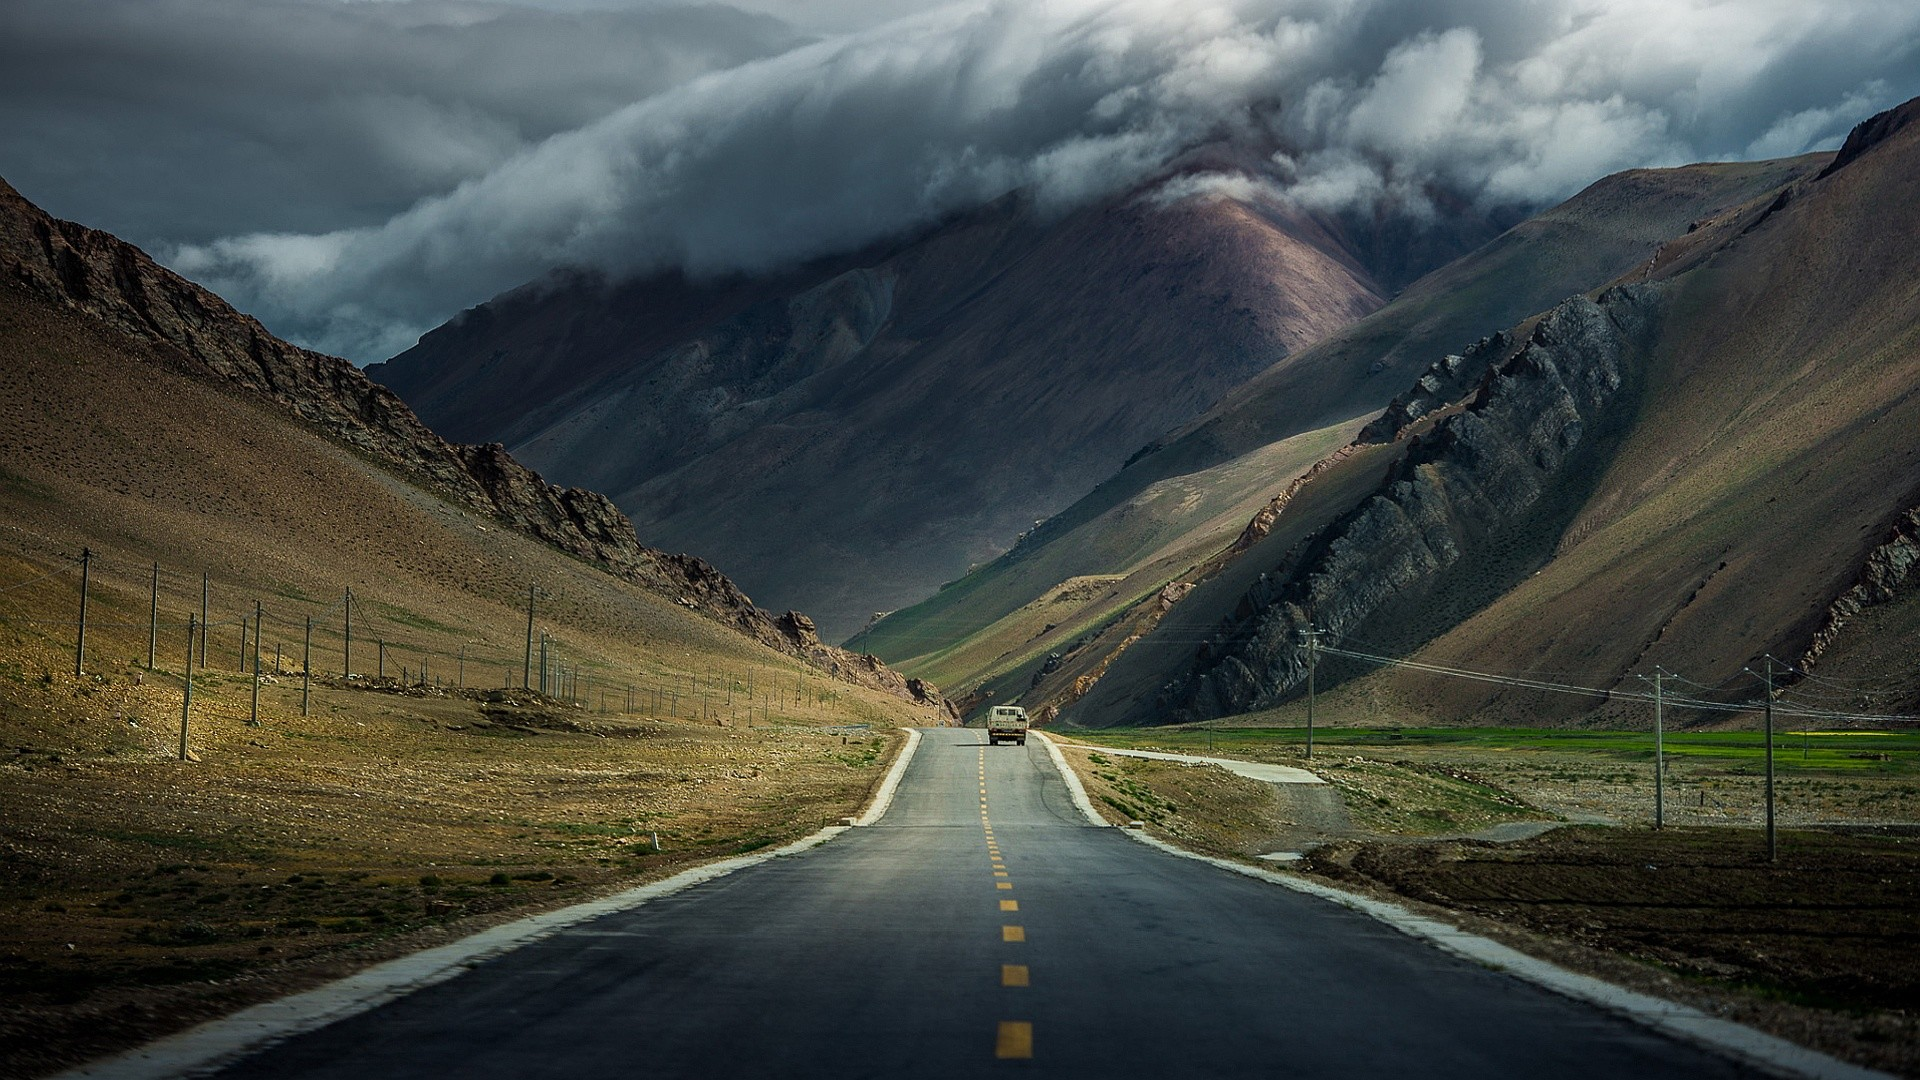 1920x1080 road-mountains-overcast-clouds-.jpg (1920×1080) · Hd  WallpaperWallpapersThe ...